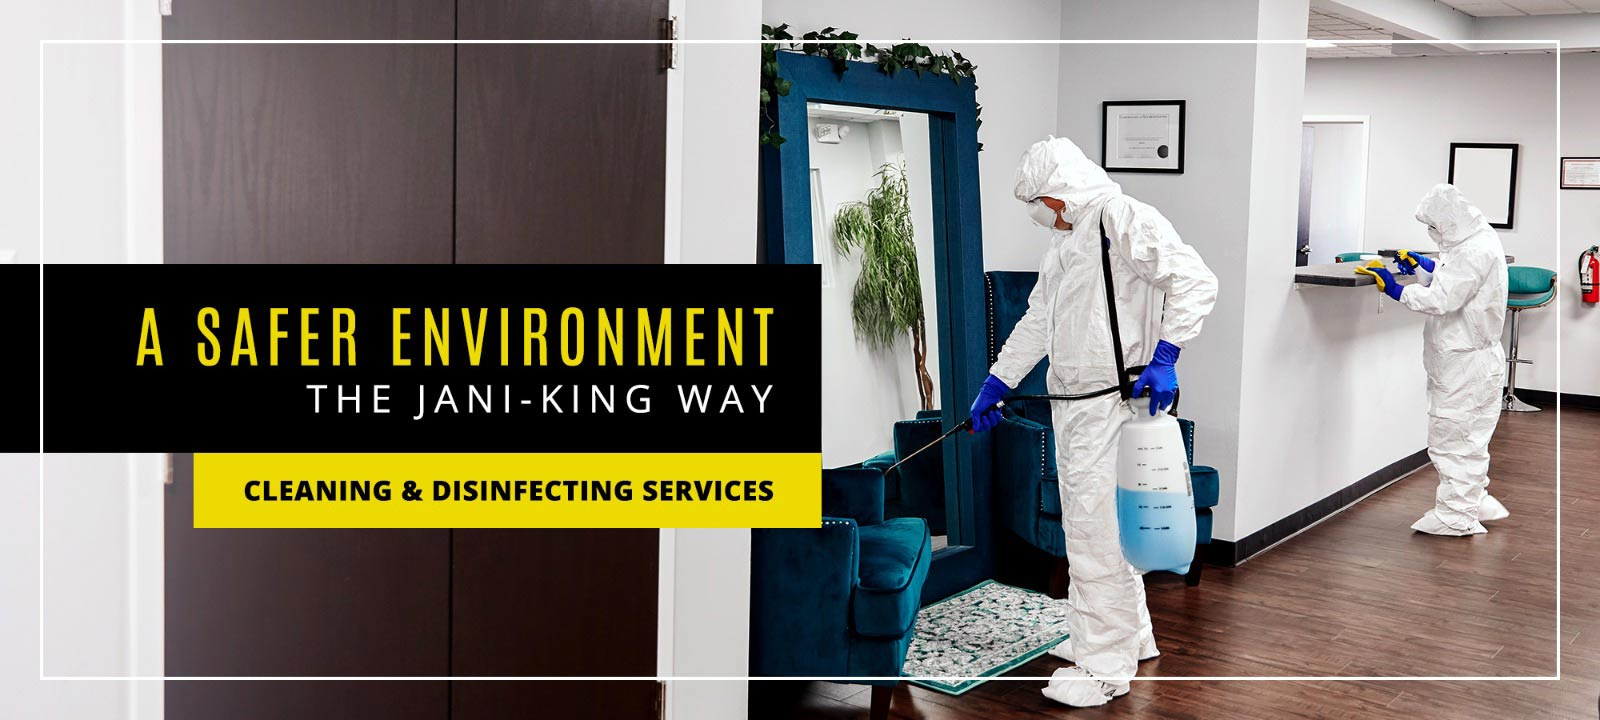 jani king commercial cleaning disiinfecting services janitorial services